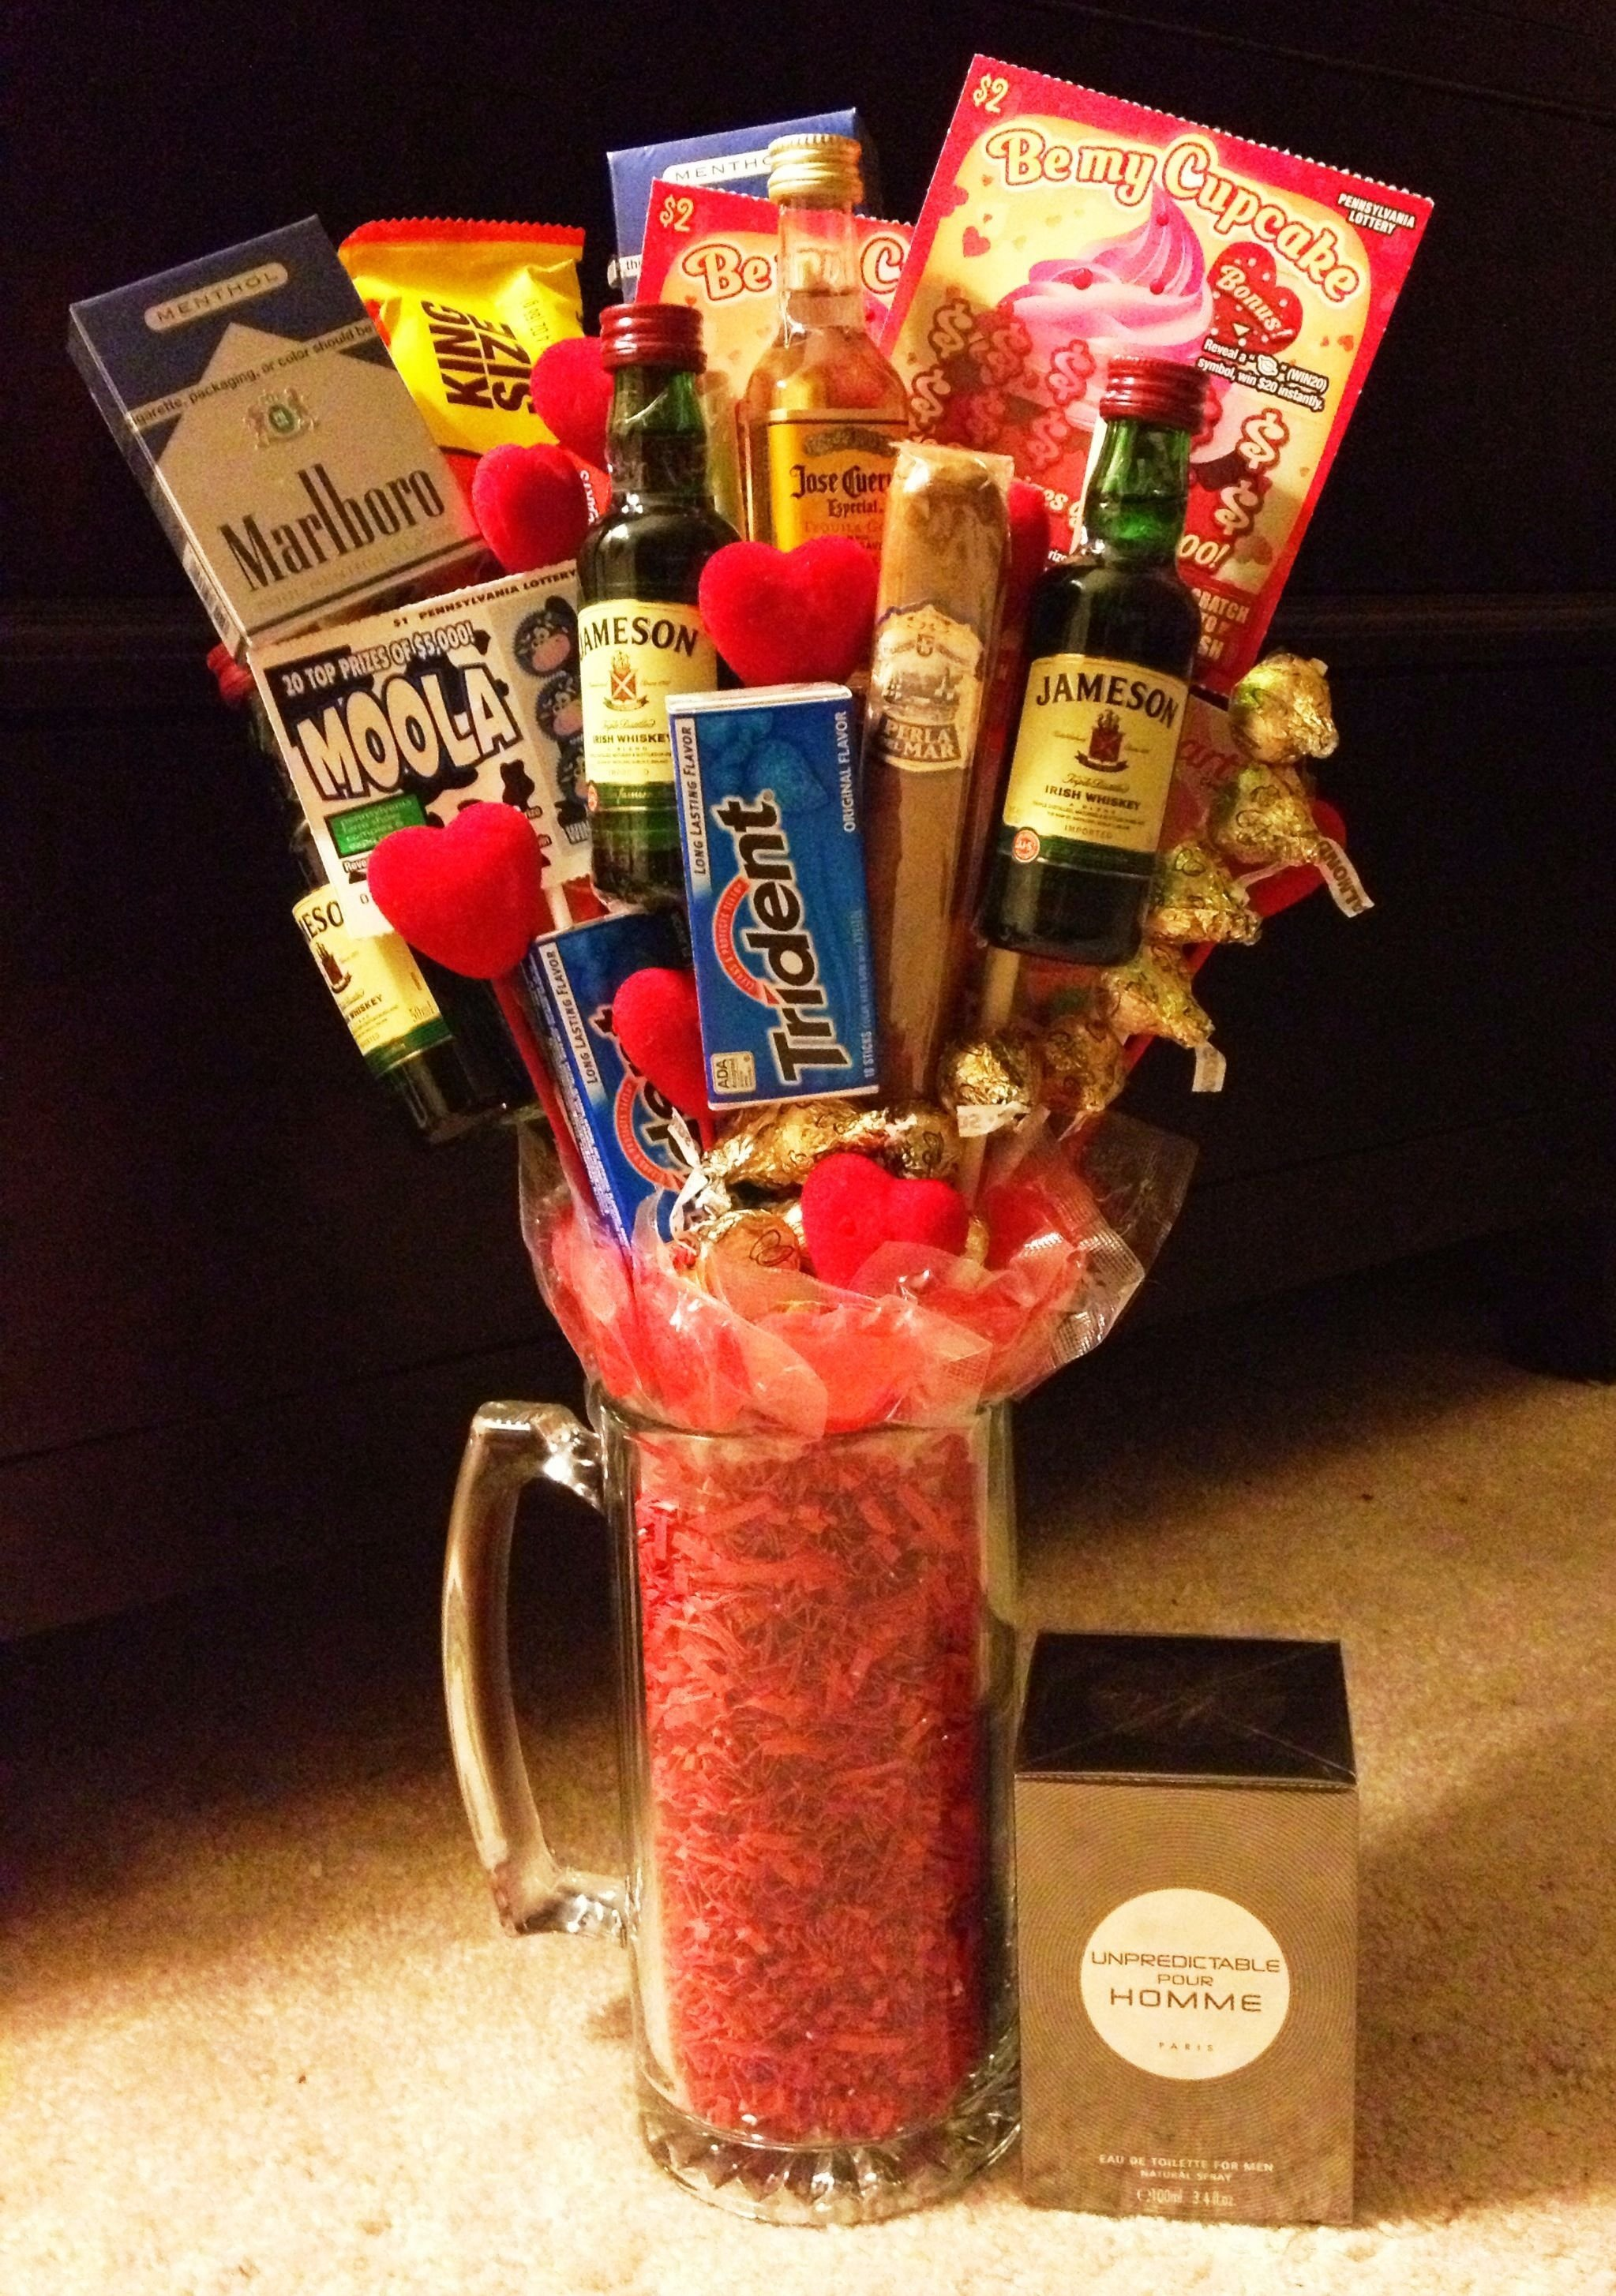 10 Wonderful Sweetest Day Gift Ideas Men pinkelsey haag on call it clever pinterest man basket gift 2021